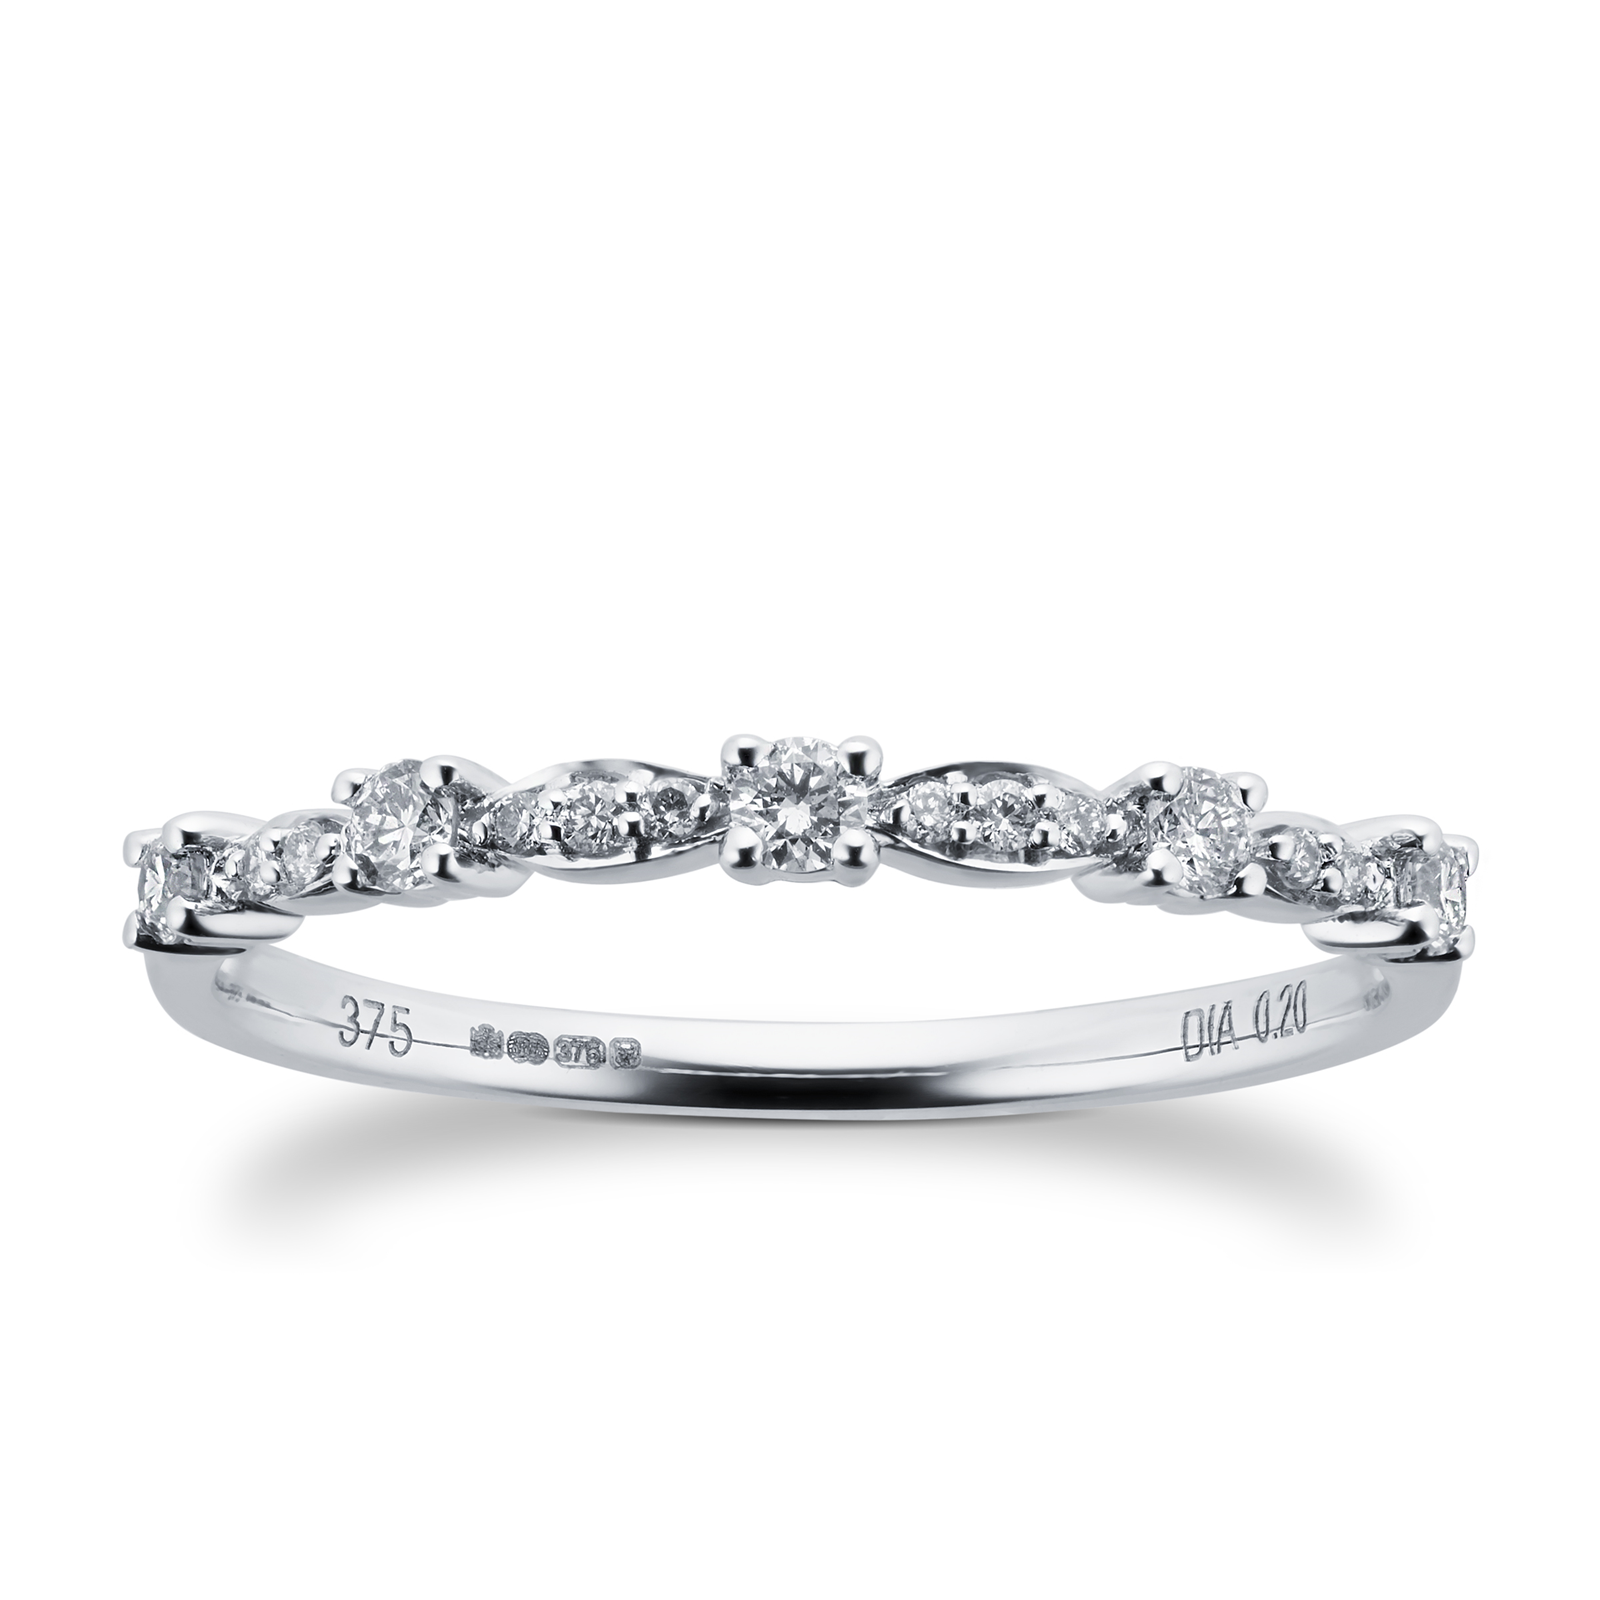 Brilliant and Marquise Cut Diamond Half Eternity Ring in 9 Carat White Gold